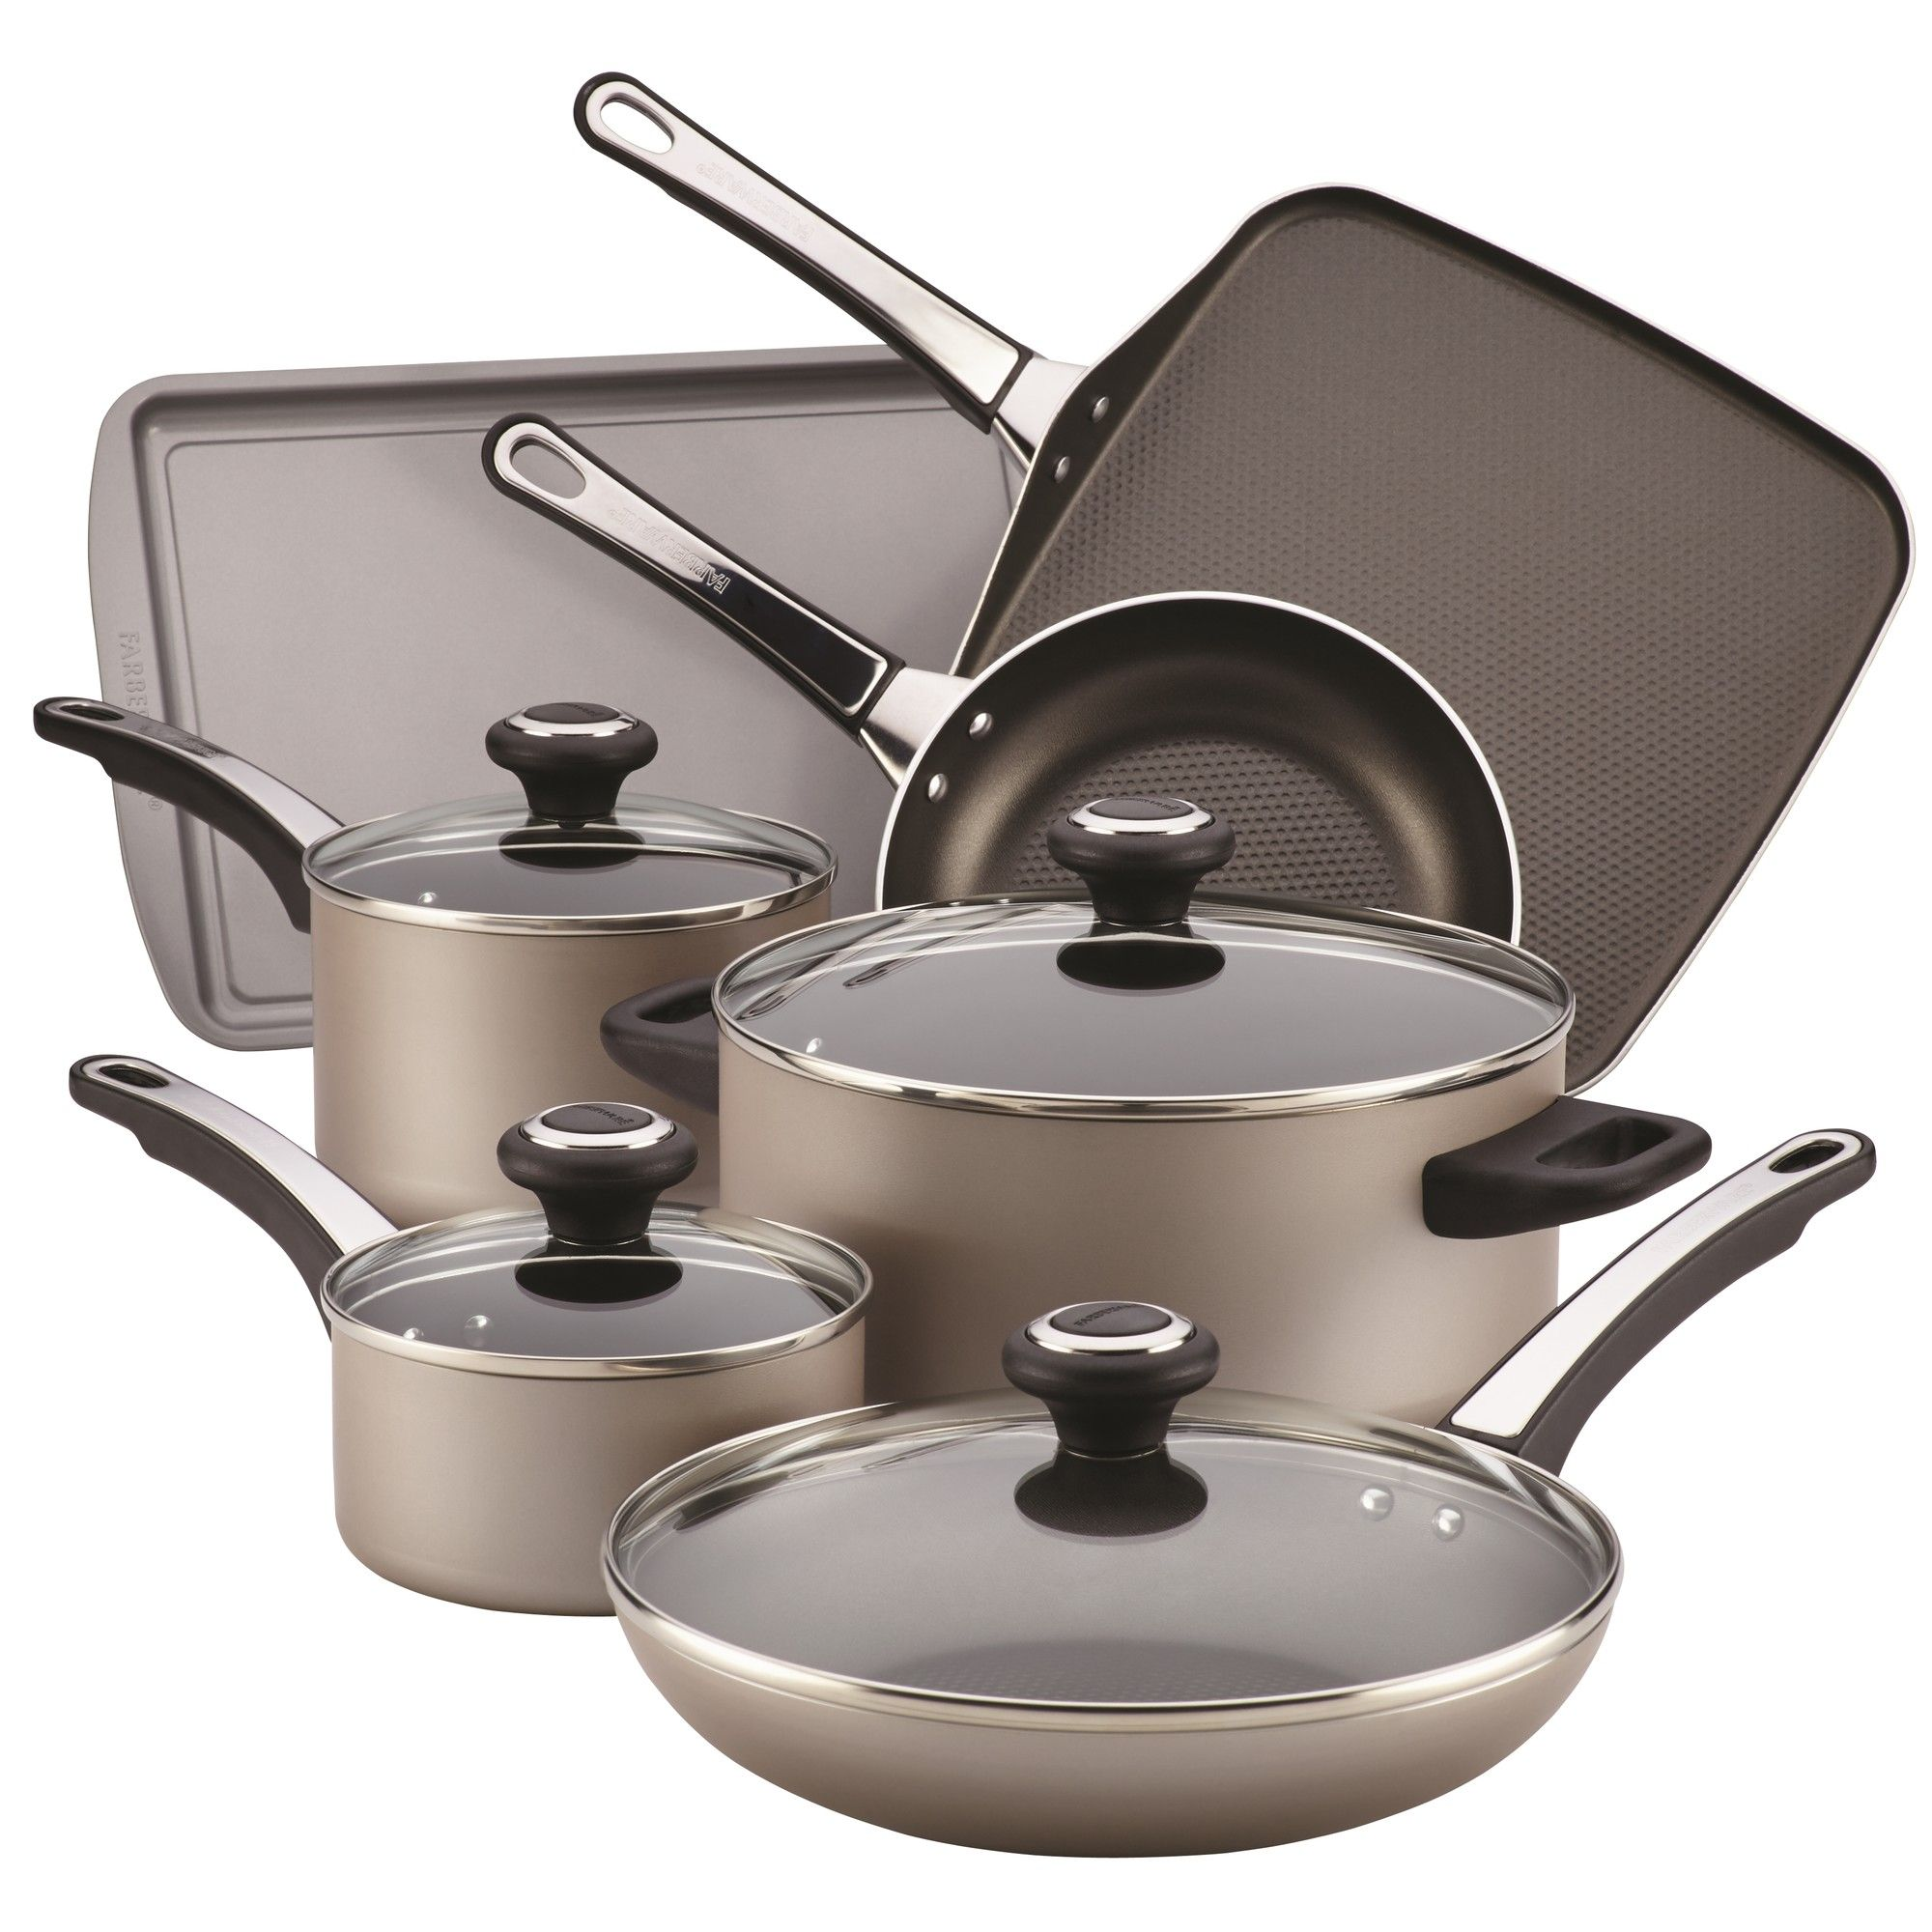 17 Piece Nonstick Cookware Set By Farberware Products In 2018